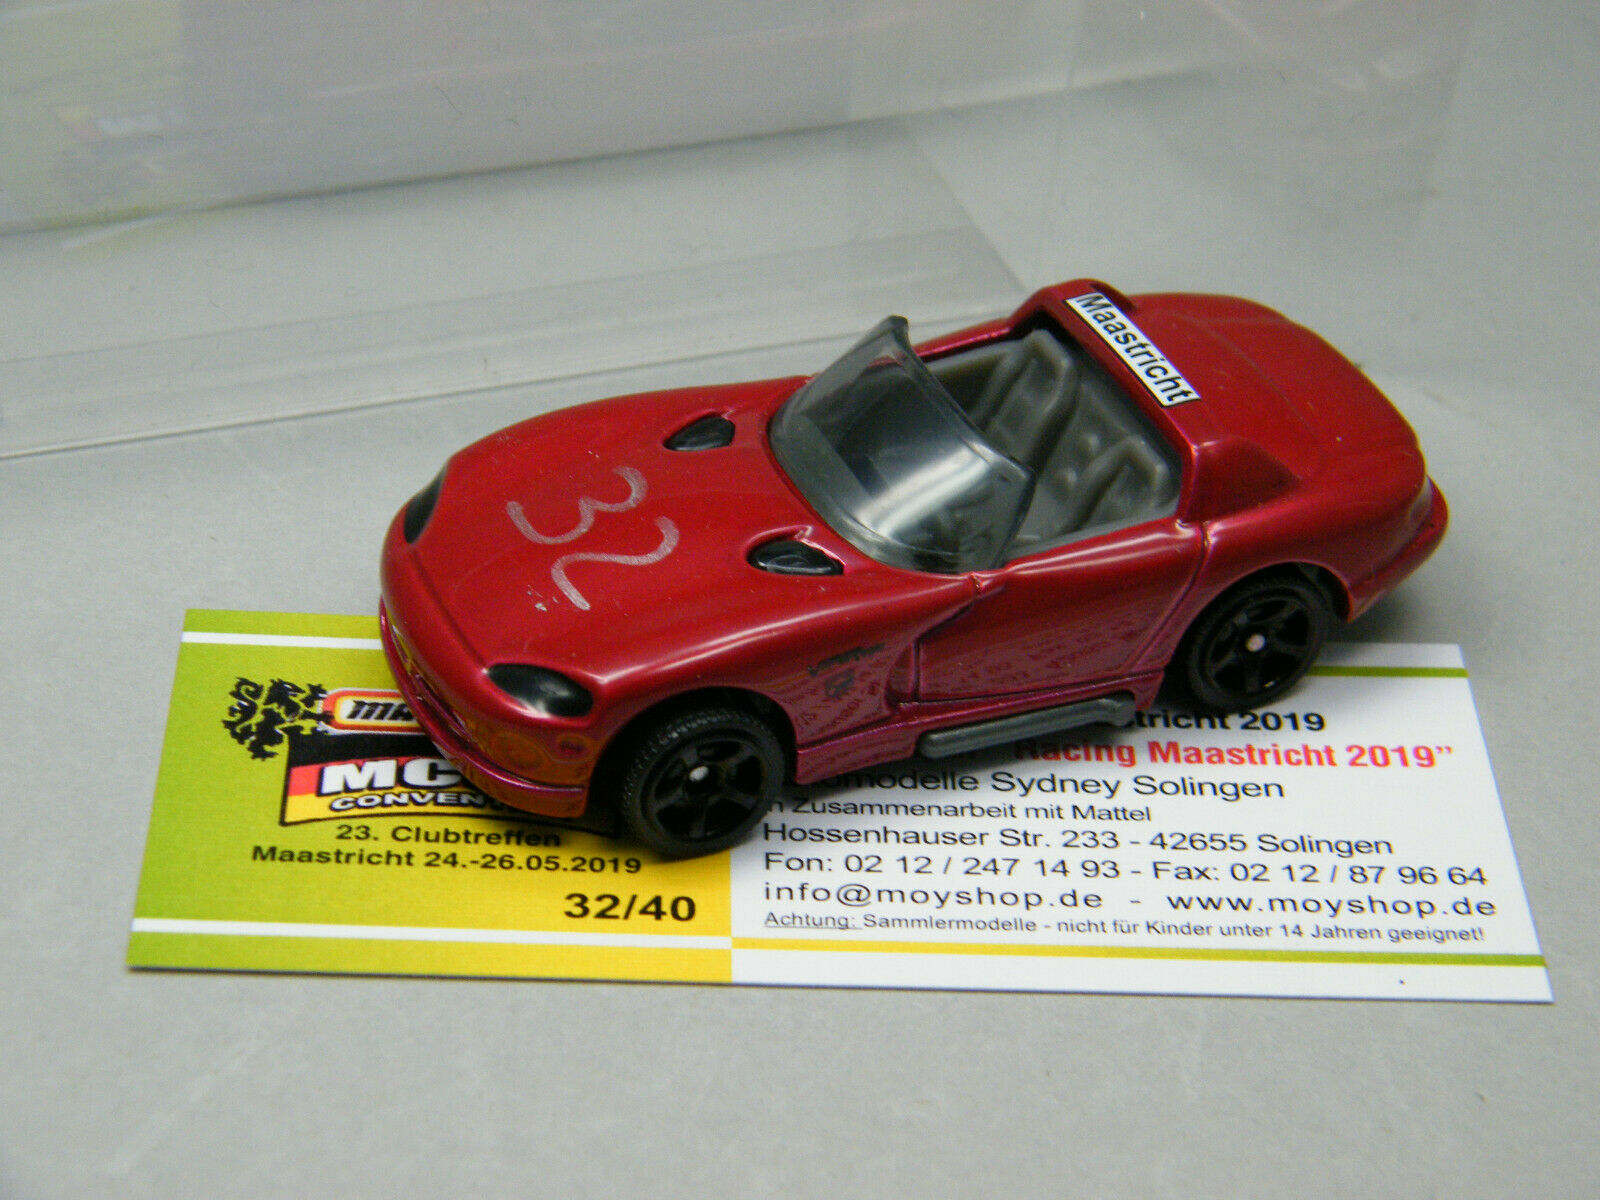 Matchbox 23th Club Meeting Maastricht 2019 Dodge Viper 1v40 Racing Car